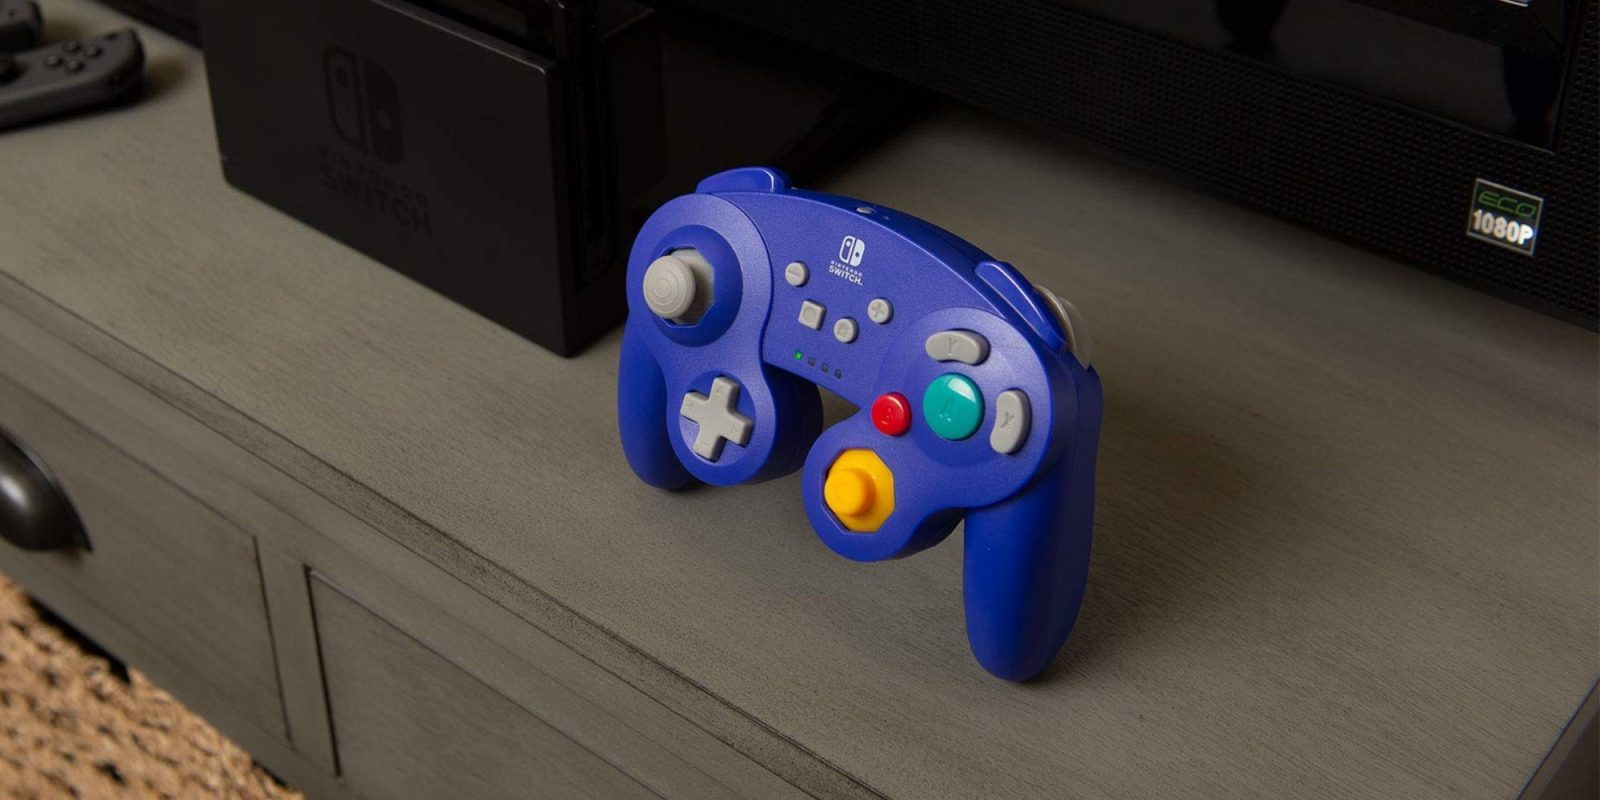 PowerA's Wireless GameCube Switch Controller hits Amazon low at $34 shipped